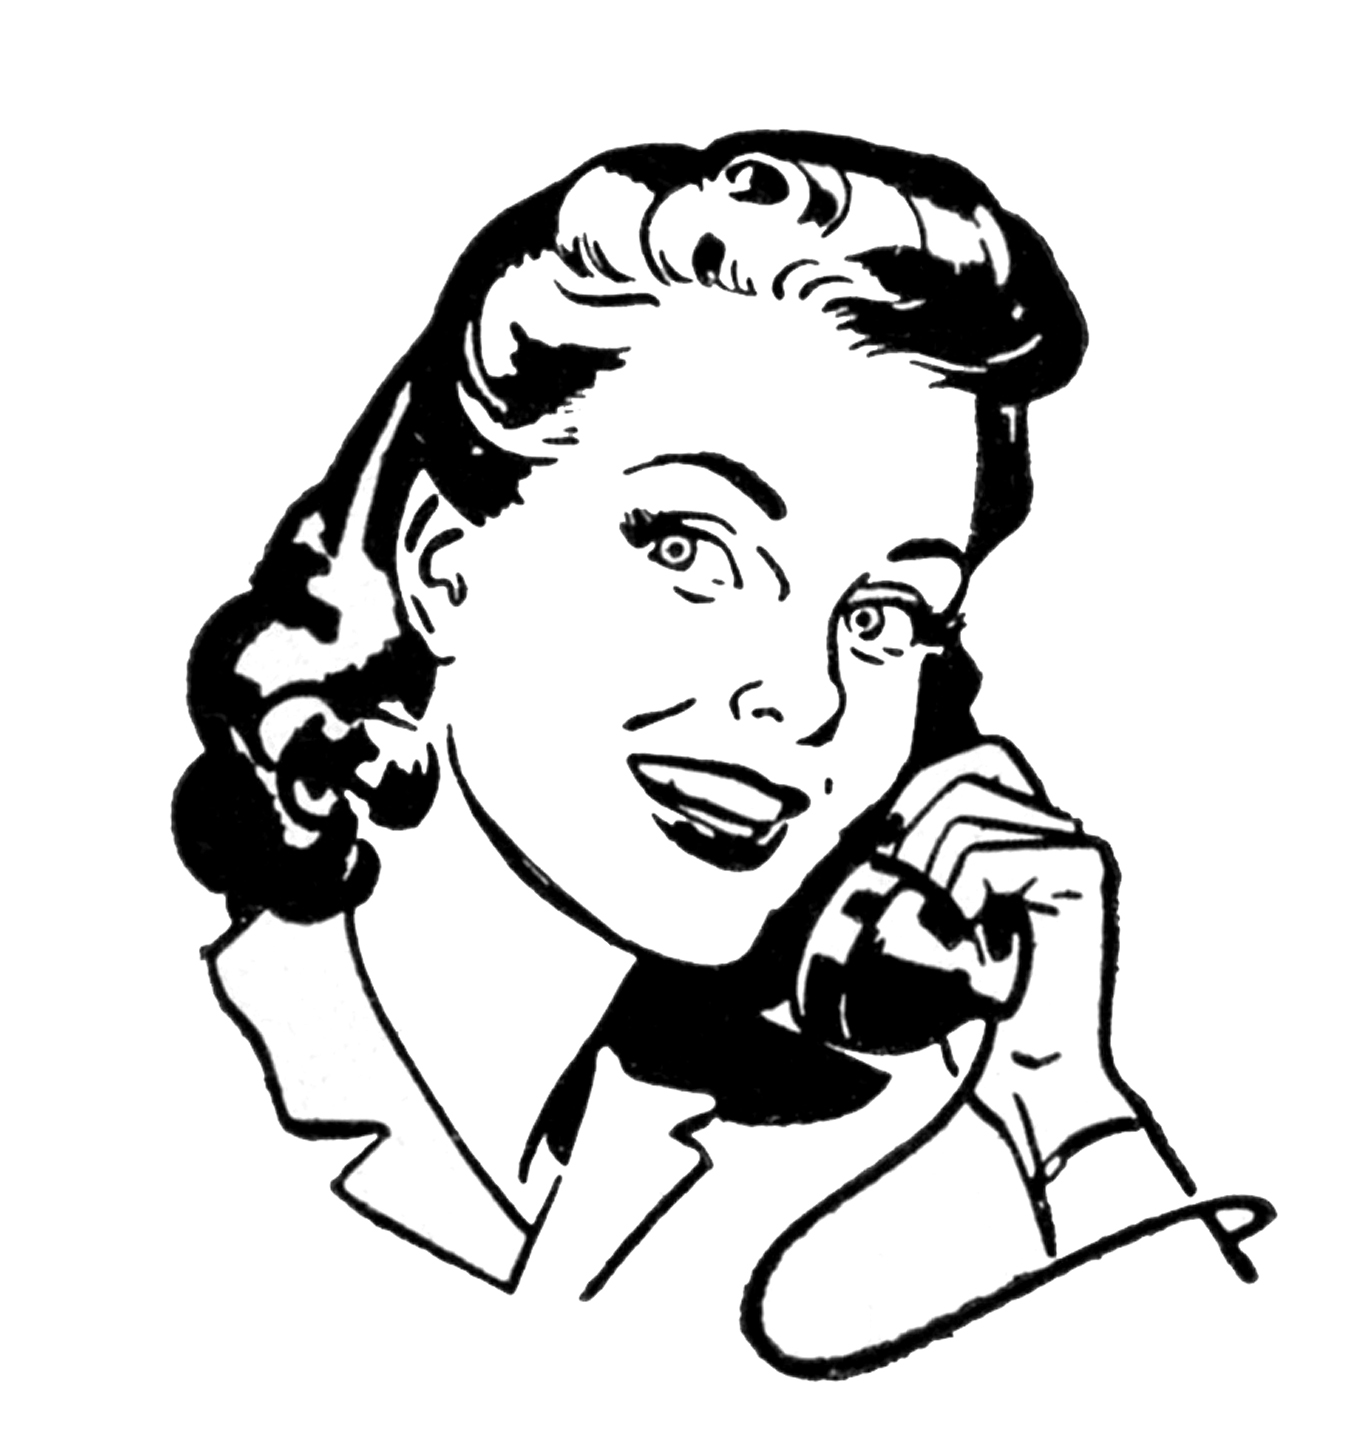 vintage telephone clipart - photo #22